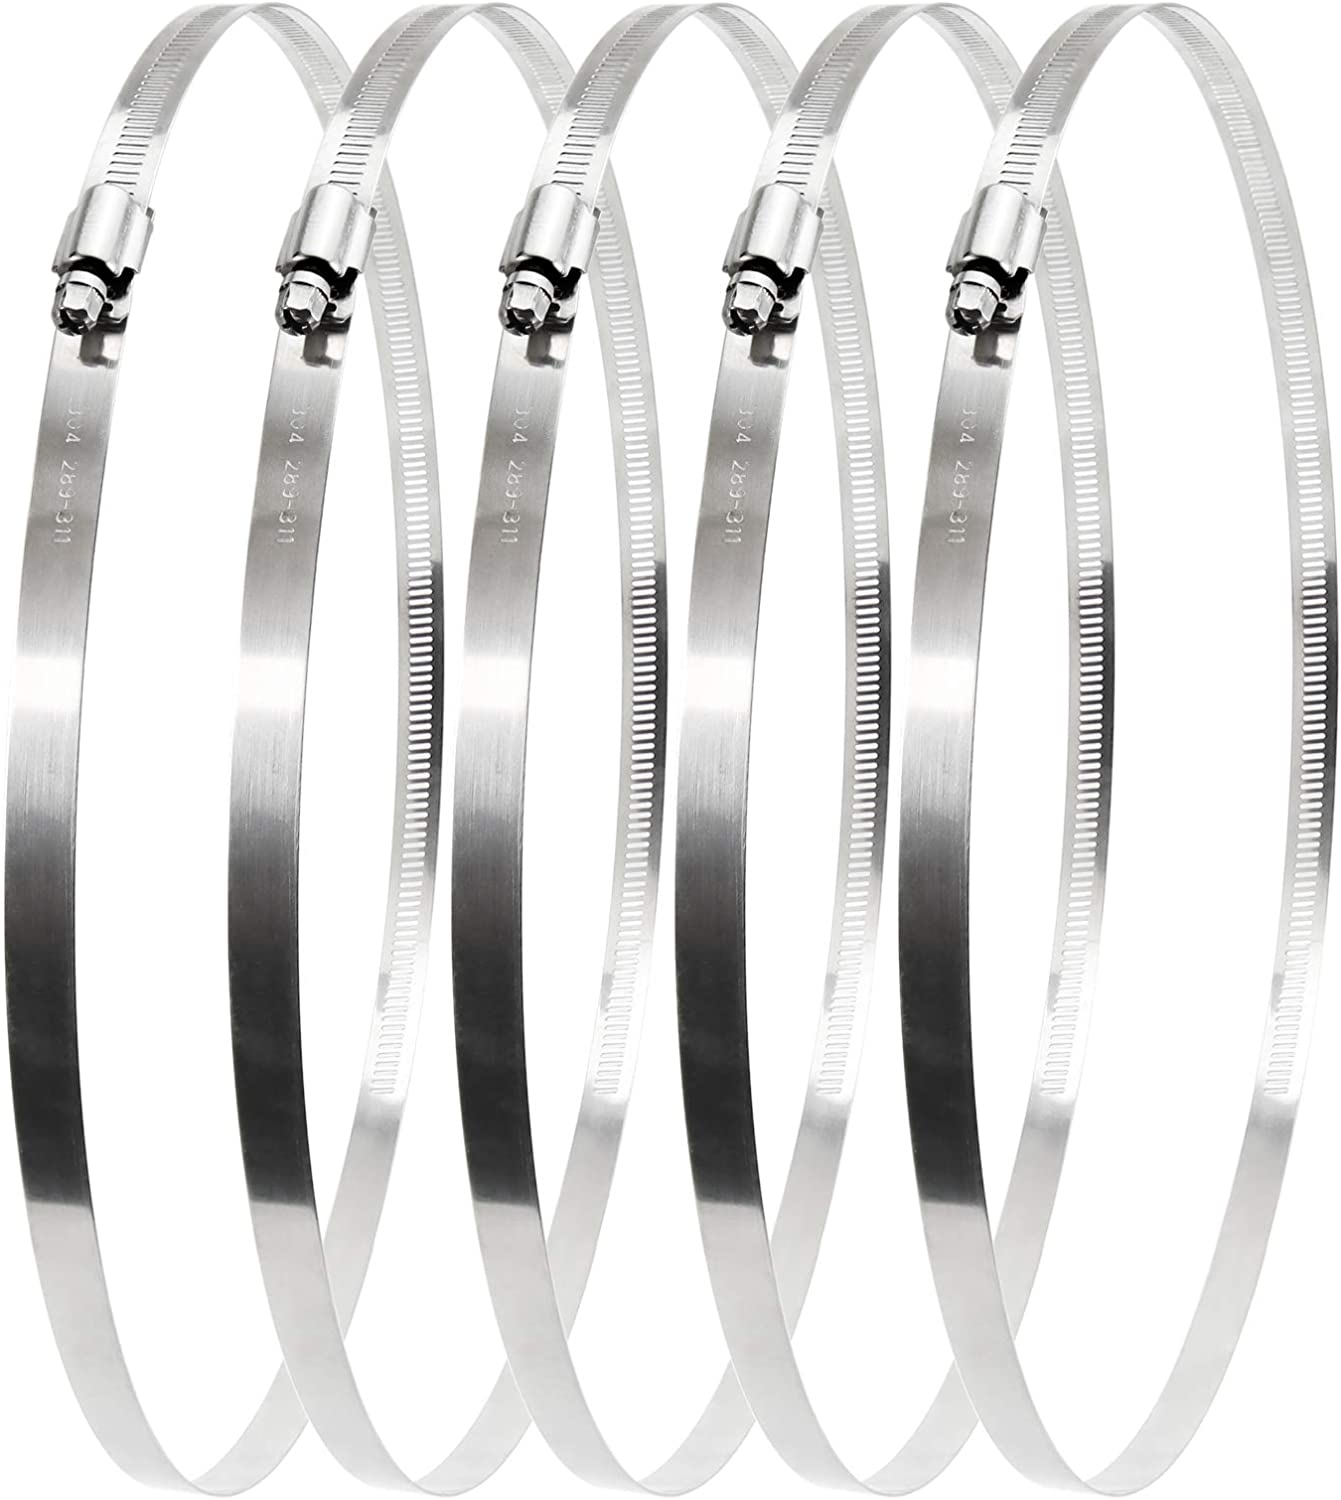 Beaquicy Indefinitely 12 Inch Stainless Steel Max 76% OFF Worm Gear Duct Hose Clamp